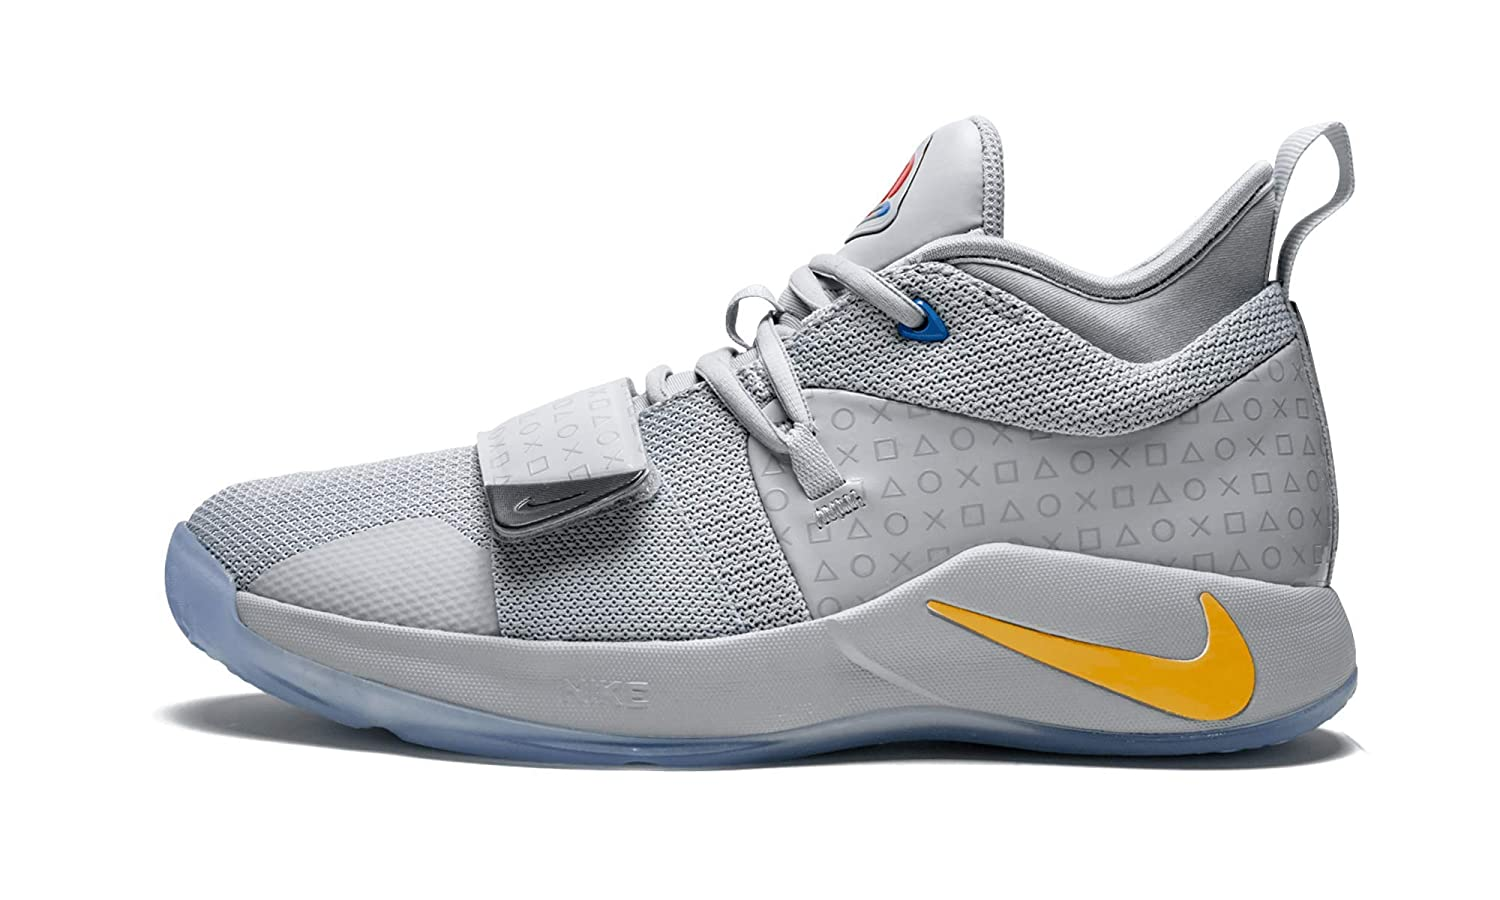 newest 59b35 6d249 Amazon.com | Nike PG 2.5 Playstation (GS) - US 6Y | Sneakers